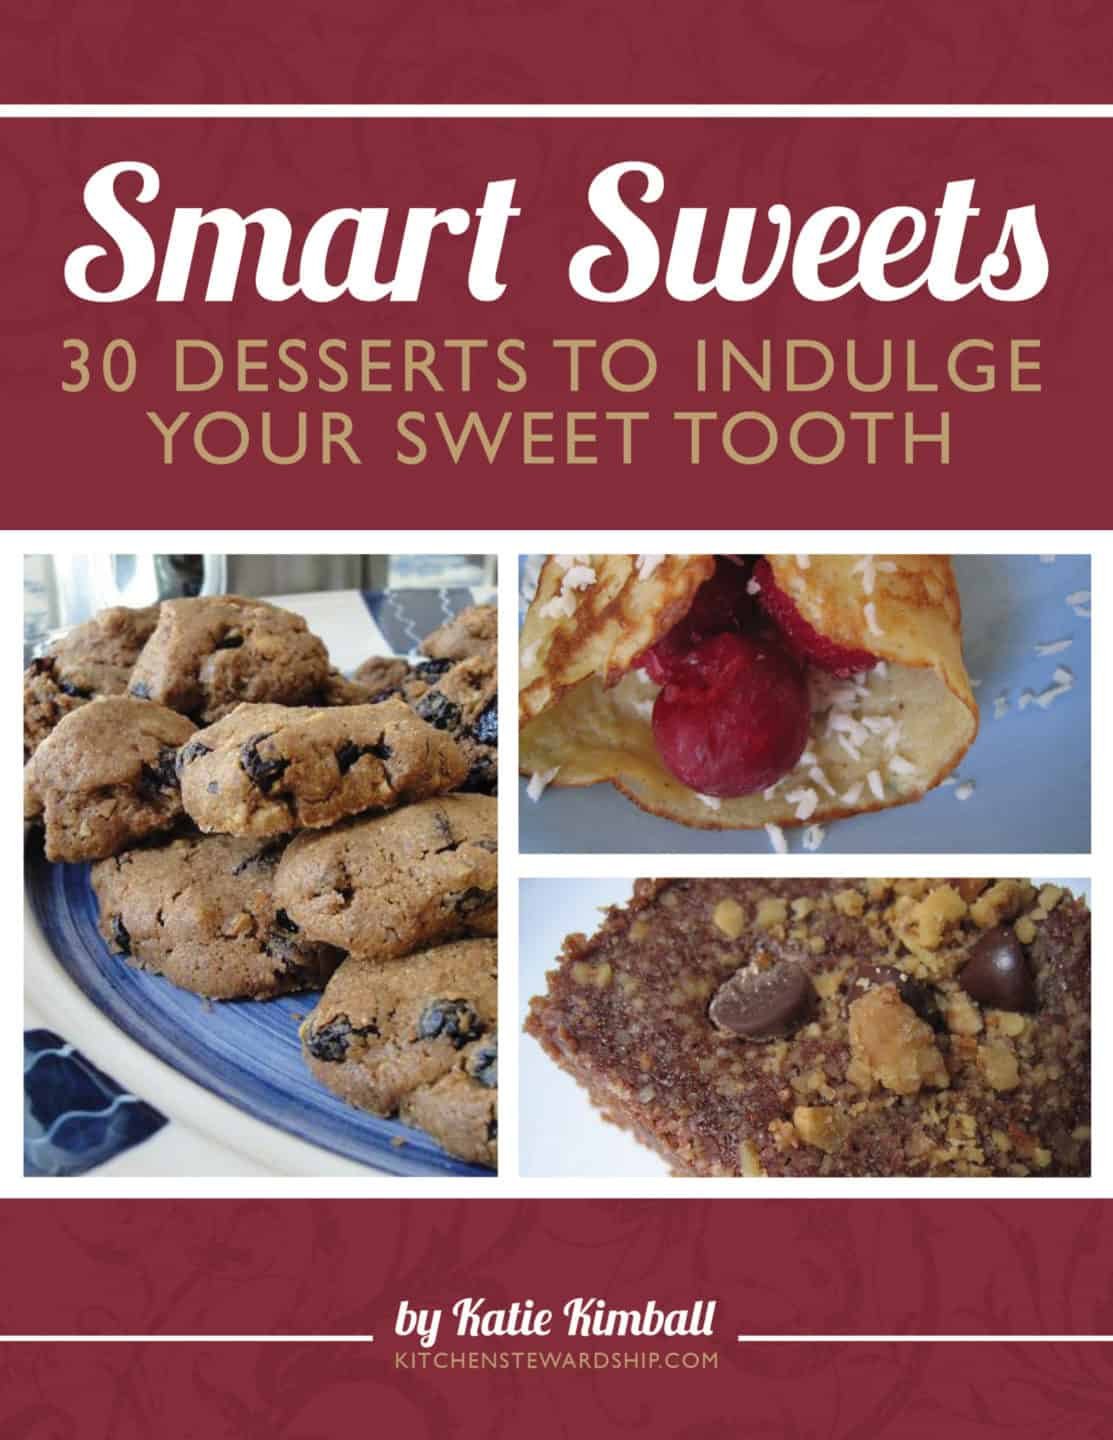 Smart Sweets uses stevia in recipes